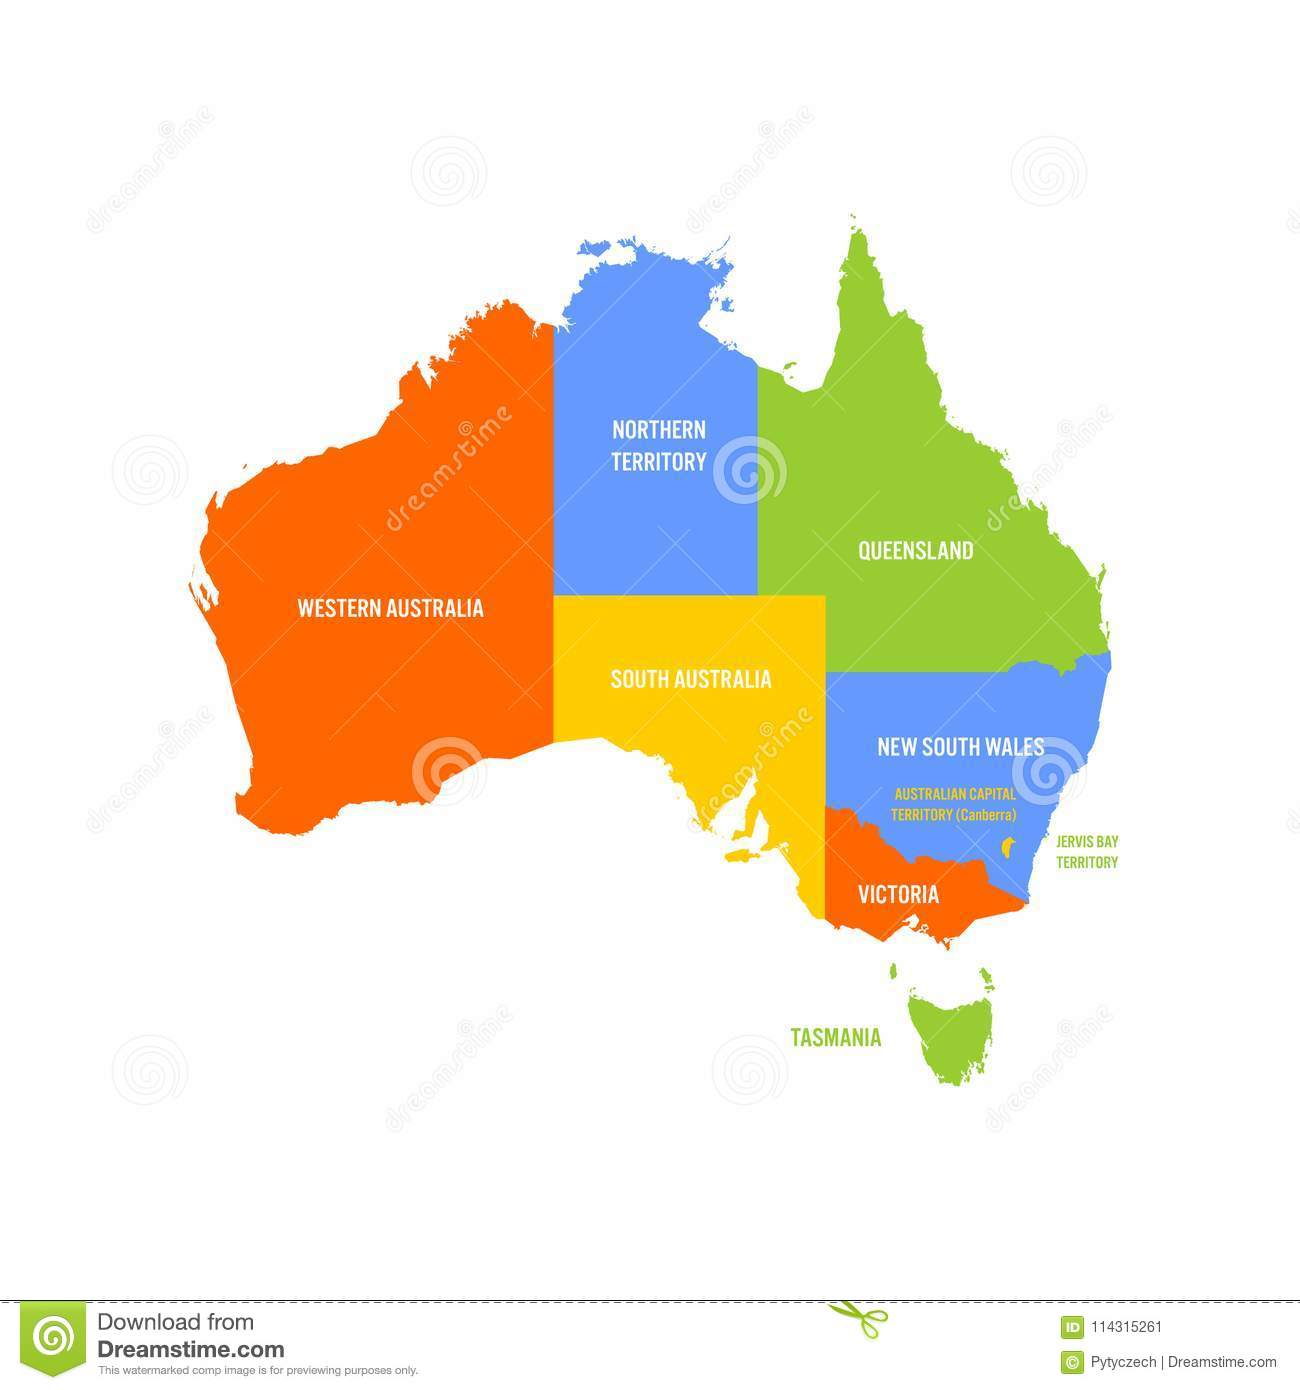 Map Of Australia By State.Simplified Map Of Australia Divided Into States And Territories